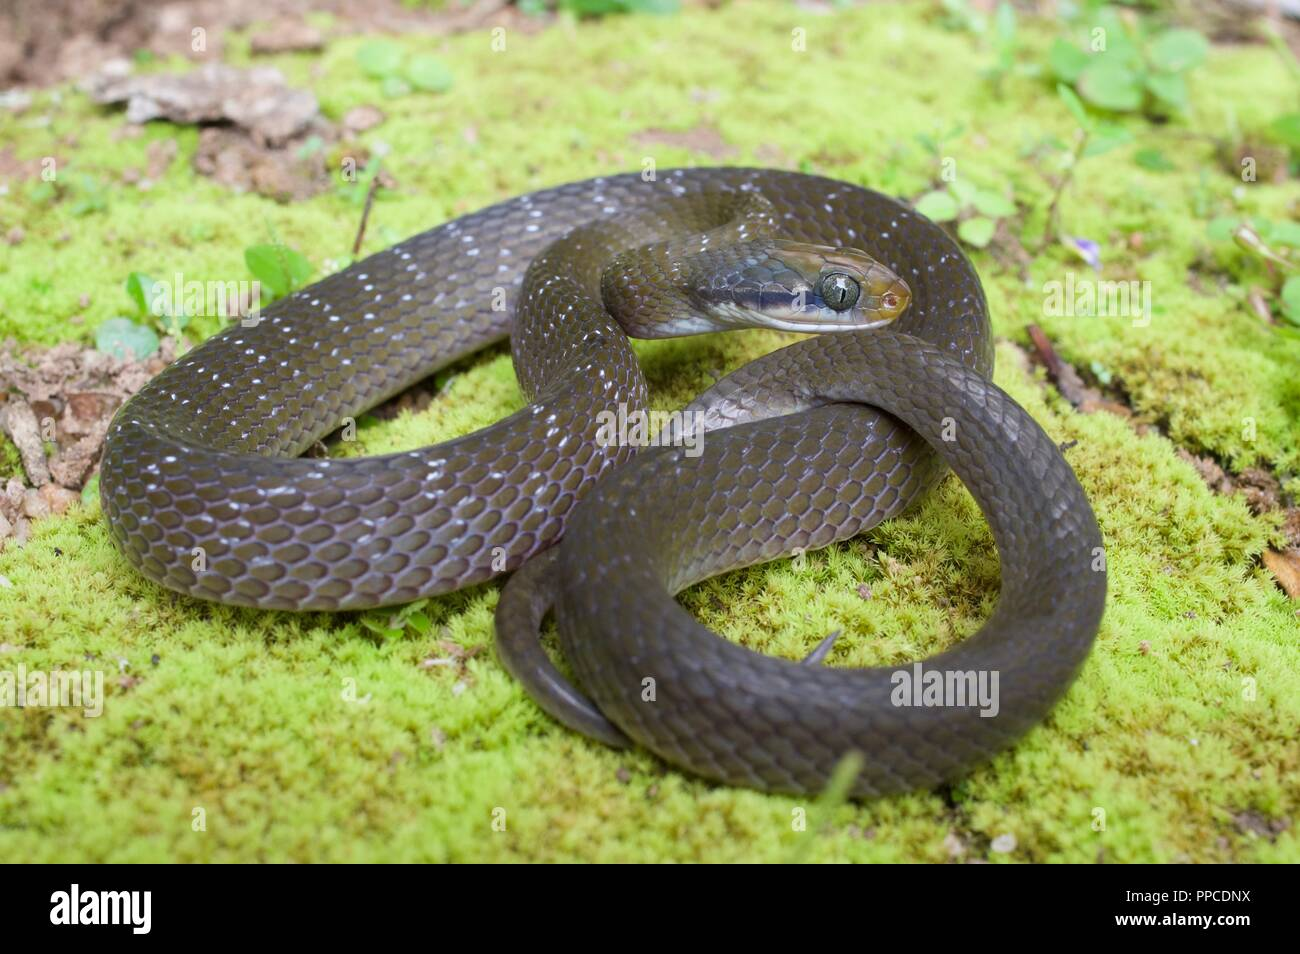 A White-lipped Herald Snake ​(Crotaphopeltis hotamboeia) coiled on mossy ground in Bobiri Forest Reserve, Ghana, West Africa - Stock Image